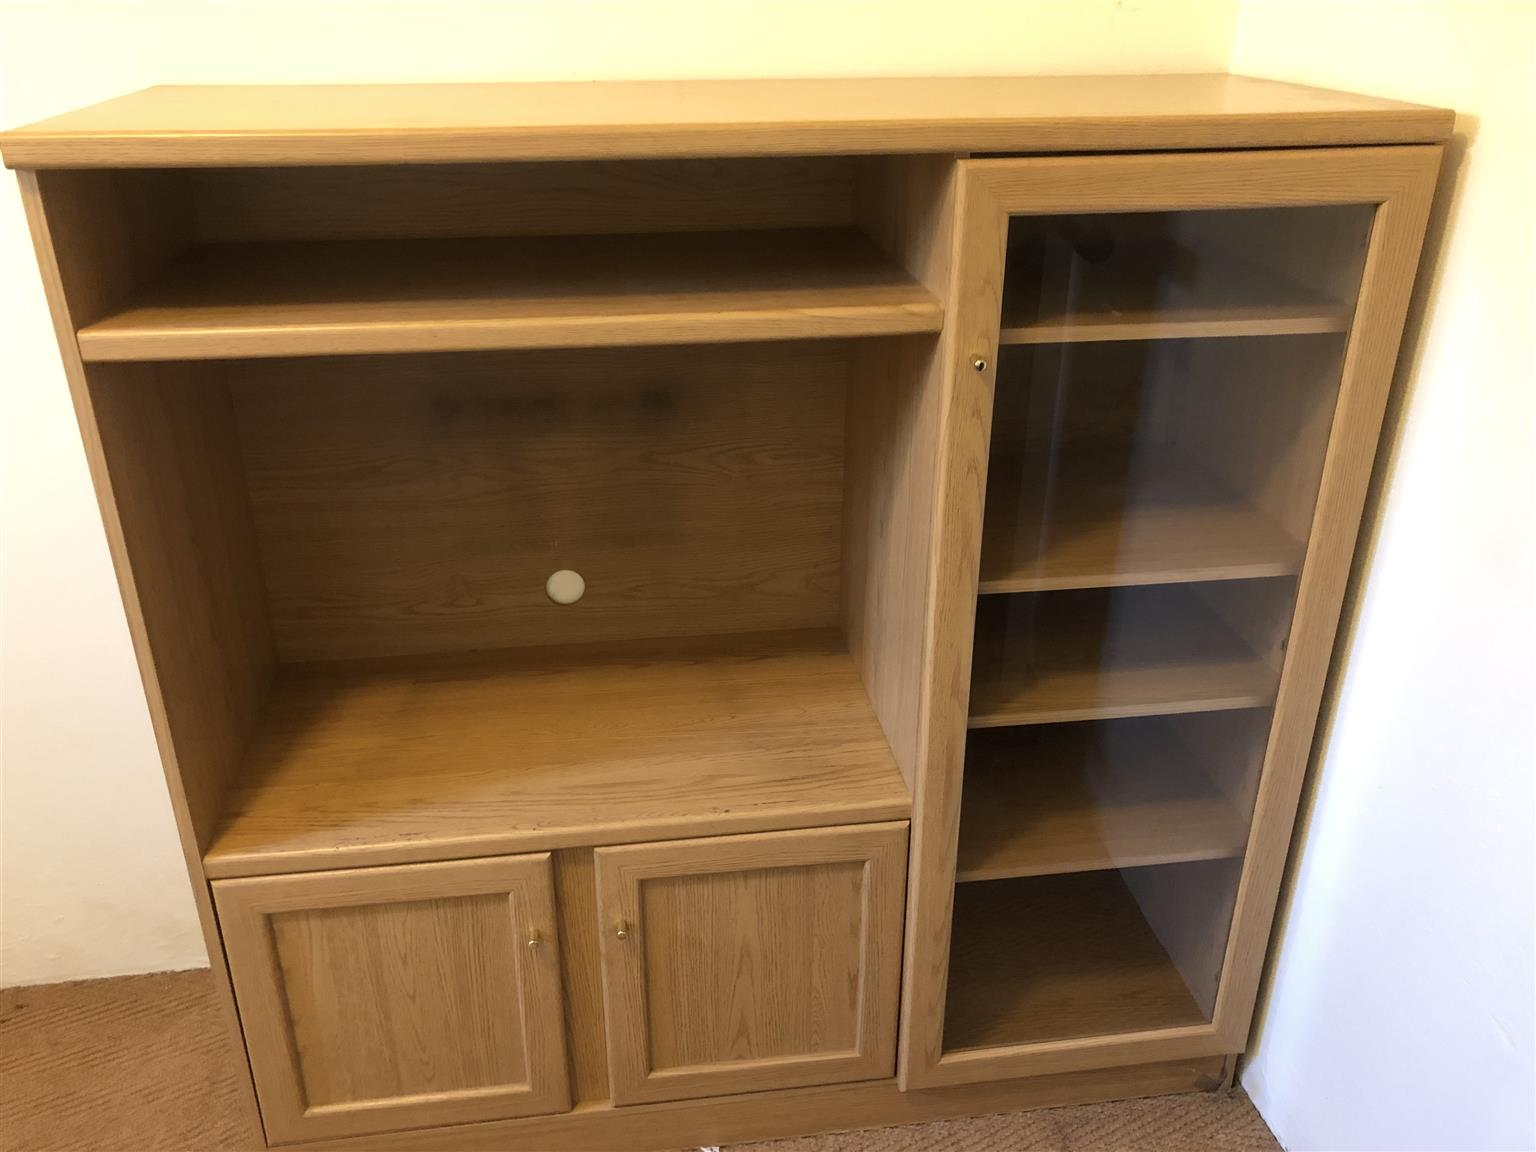 Small Wall Unit - Excellent Condition